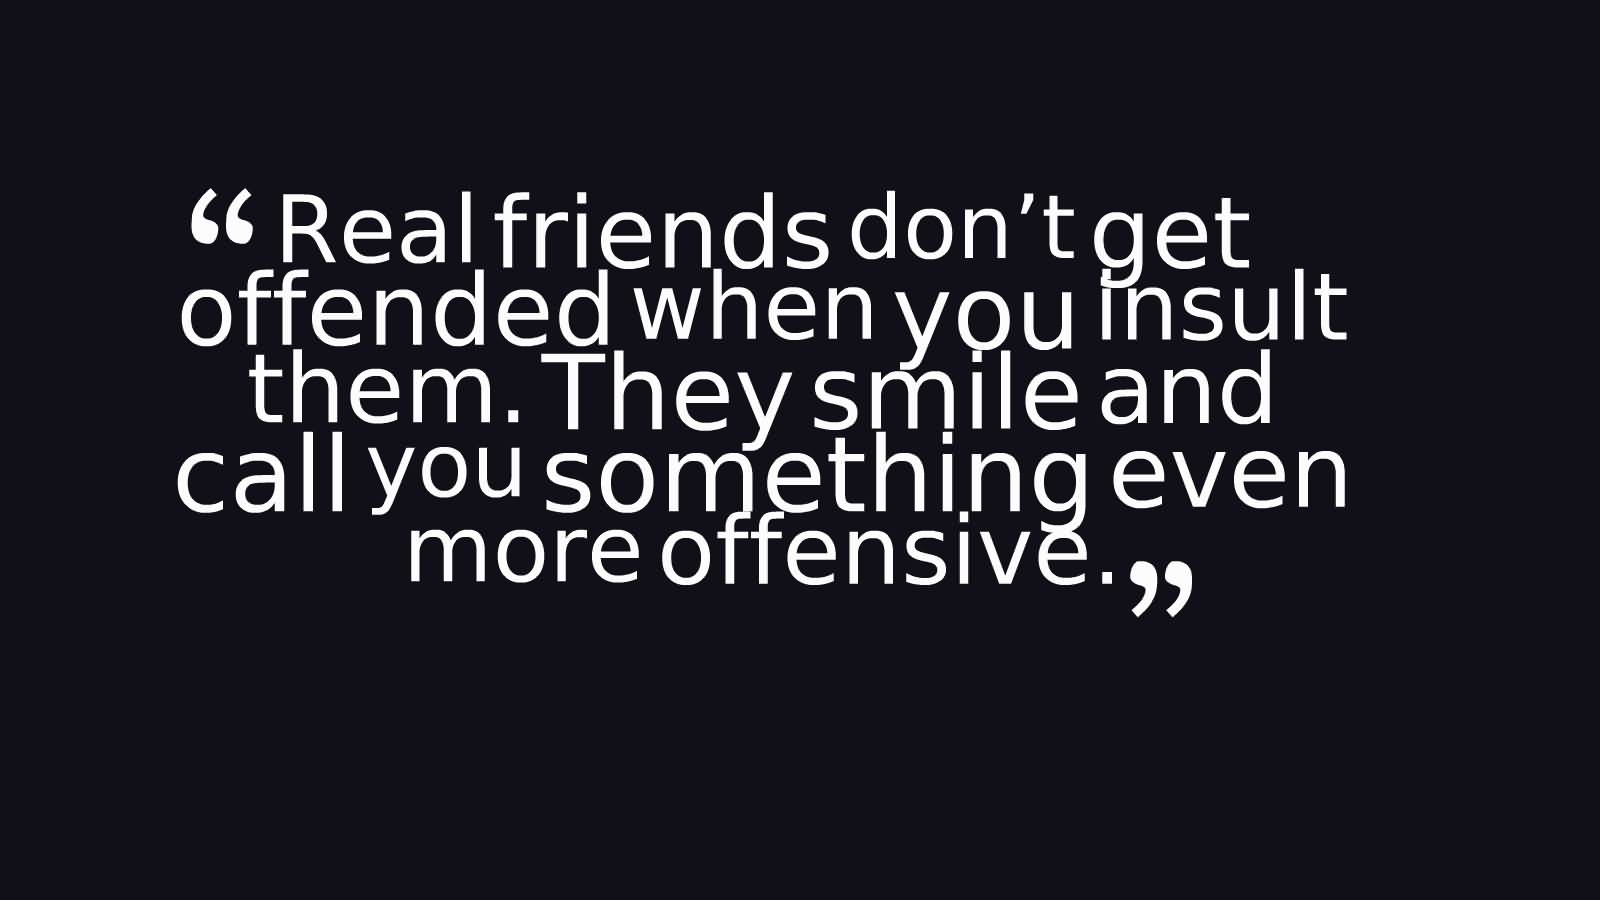 Popular Quotes About Friendship Friendship Quotes Pictures And Friendship Quotes Images